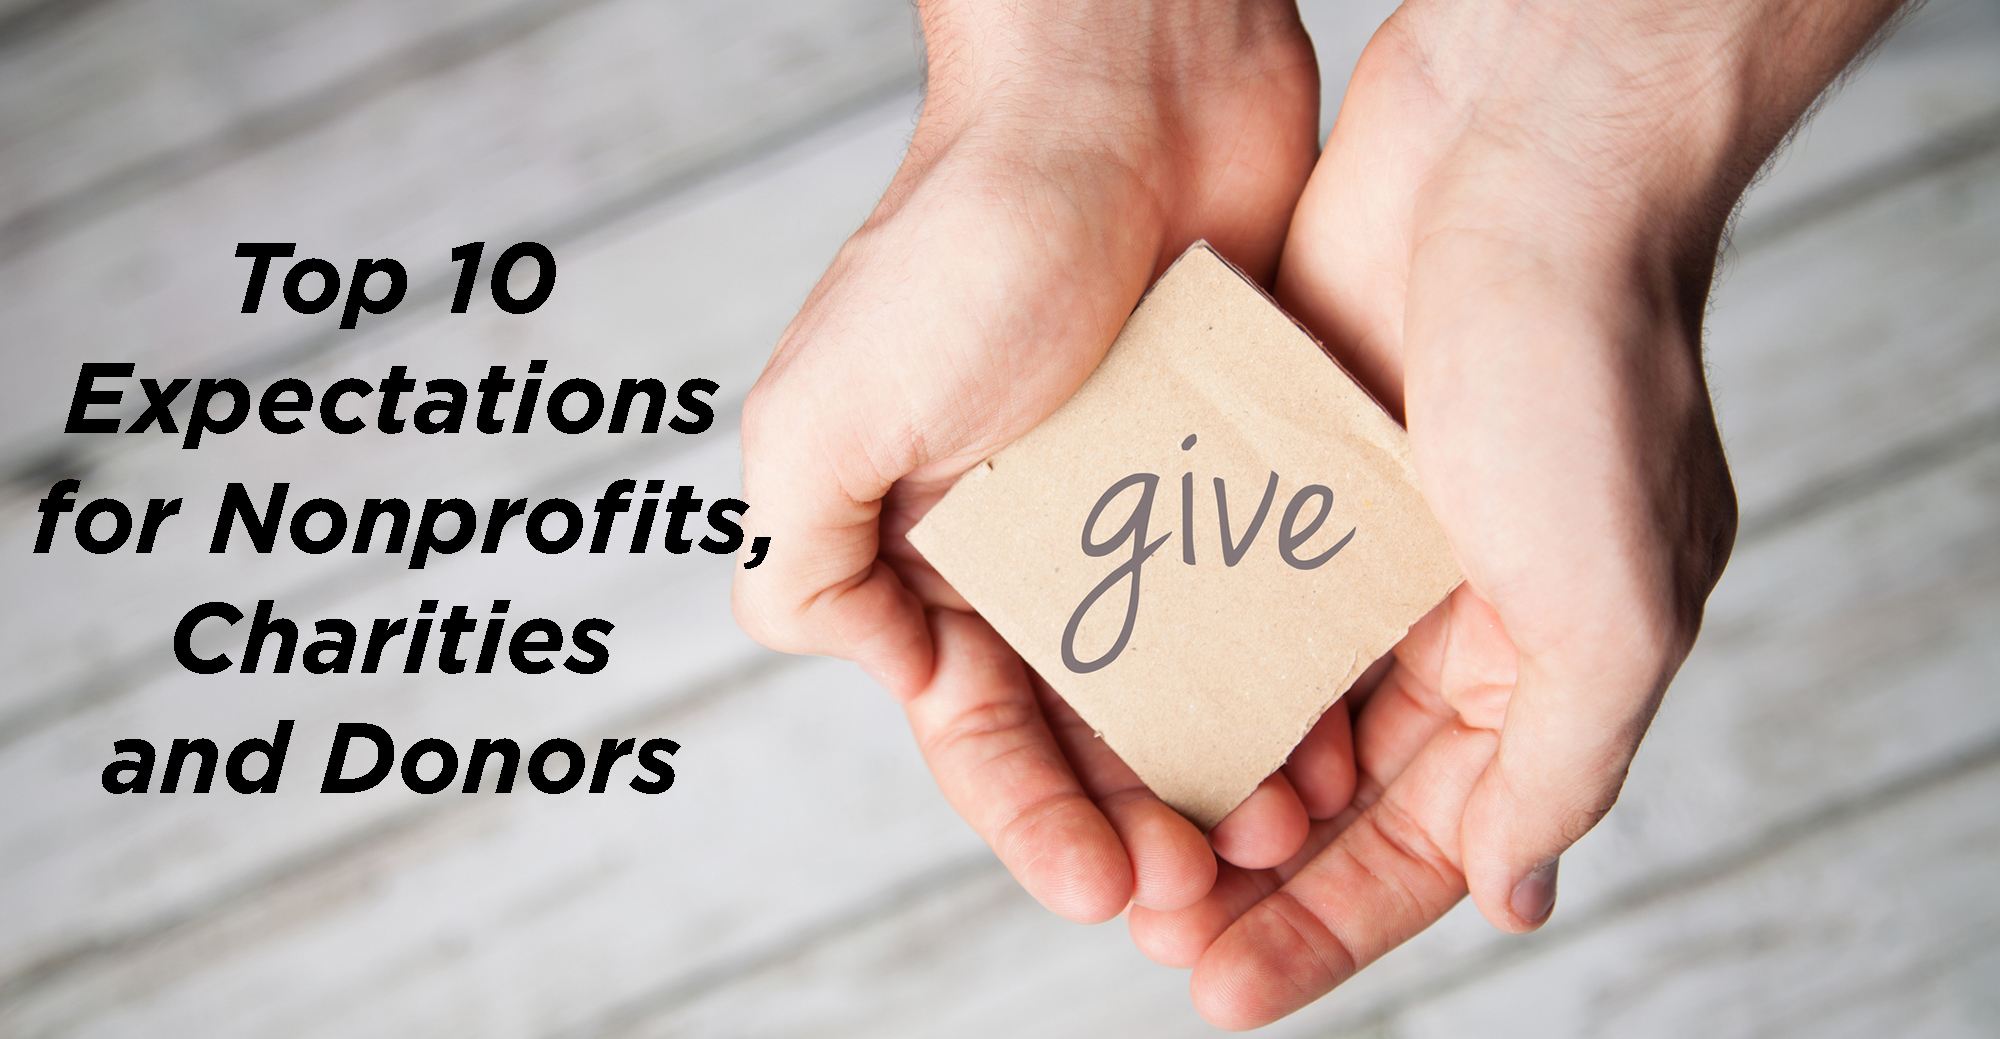 Top 10 Expectations for Nonprofits, Charities and Donors